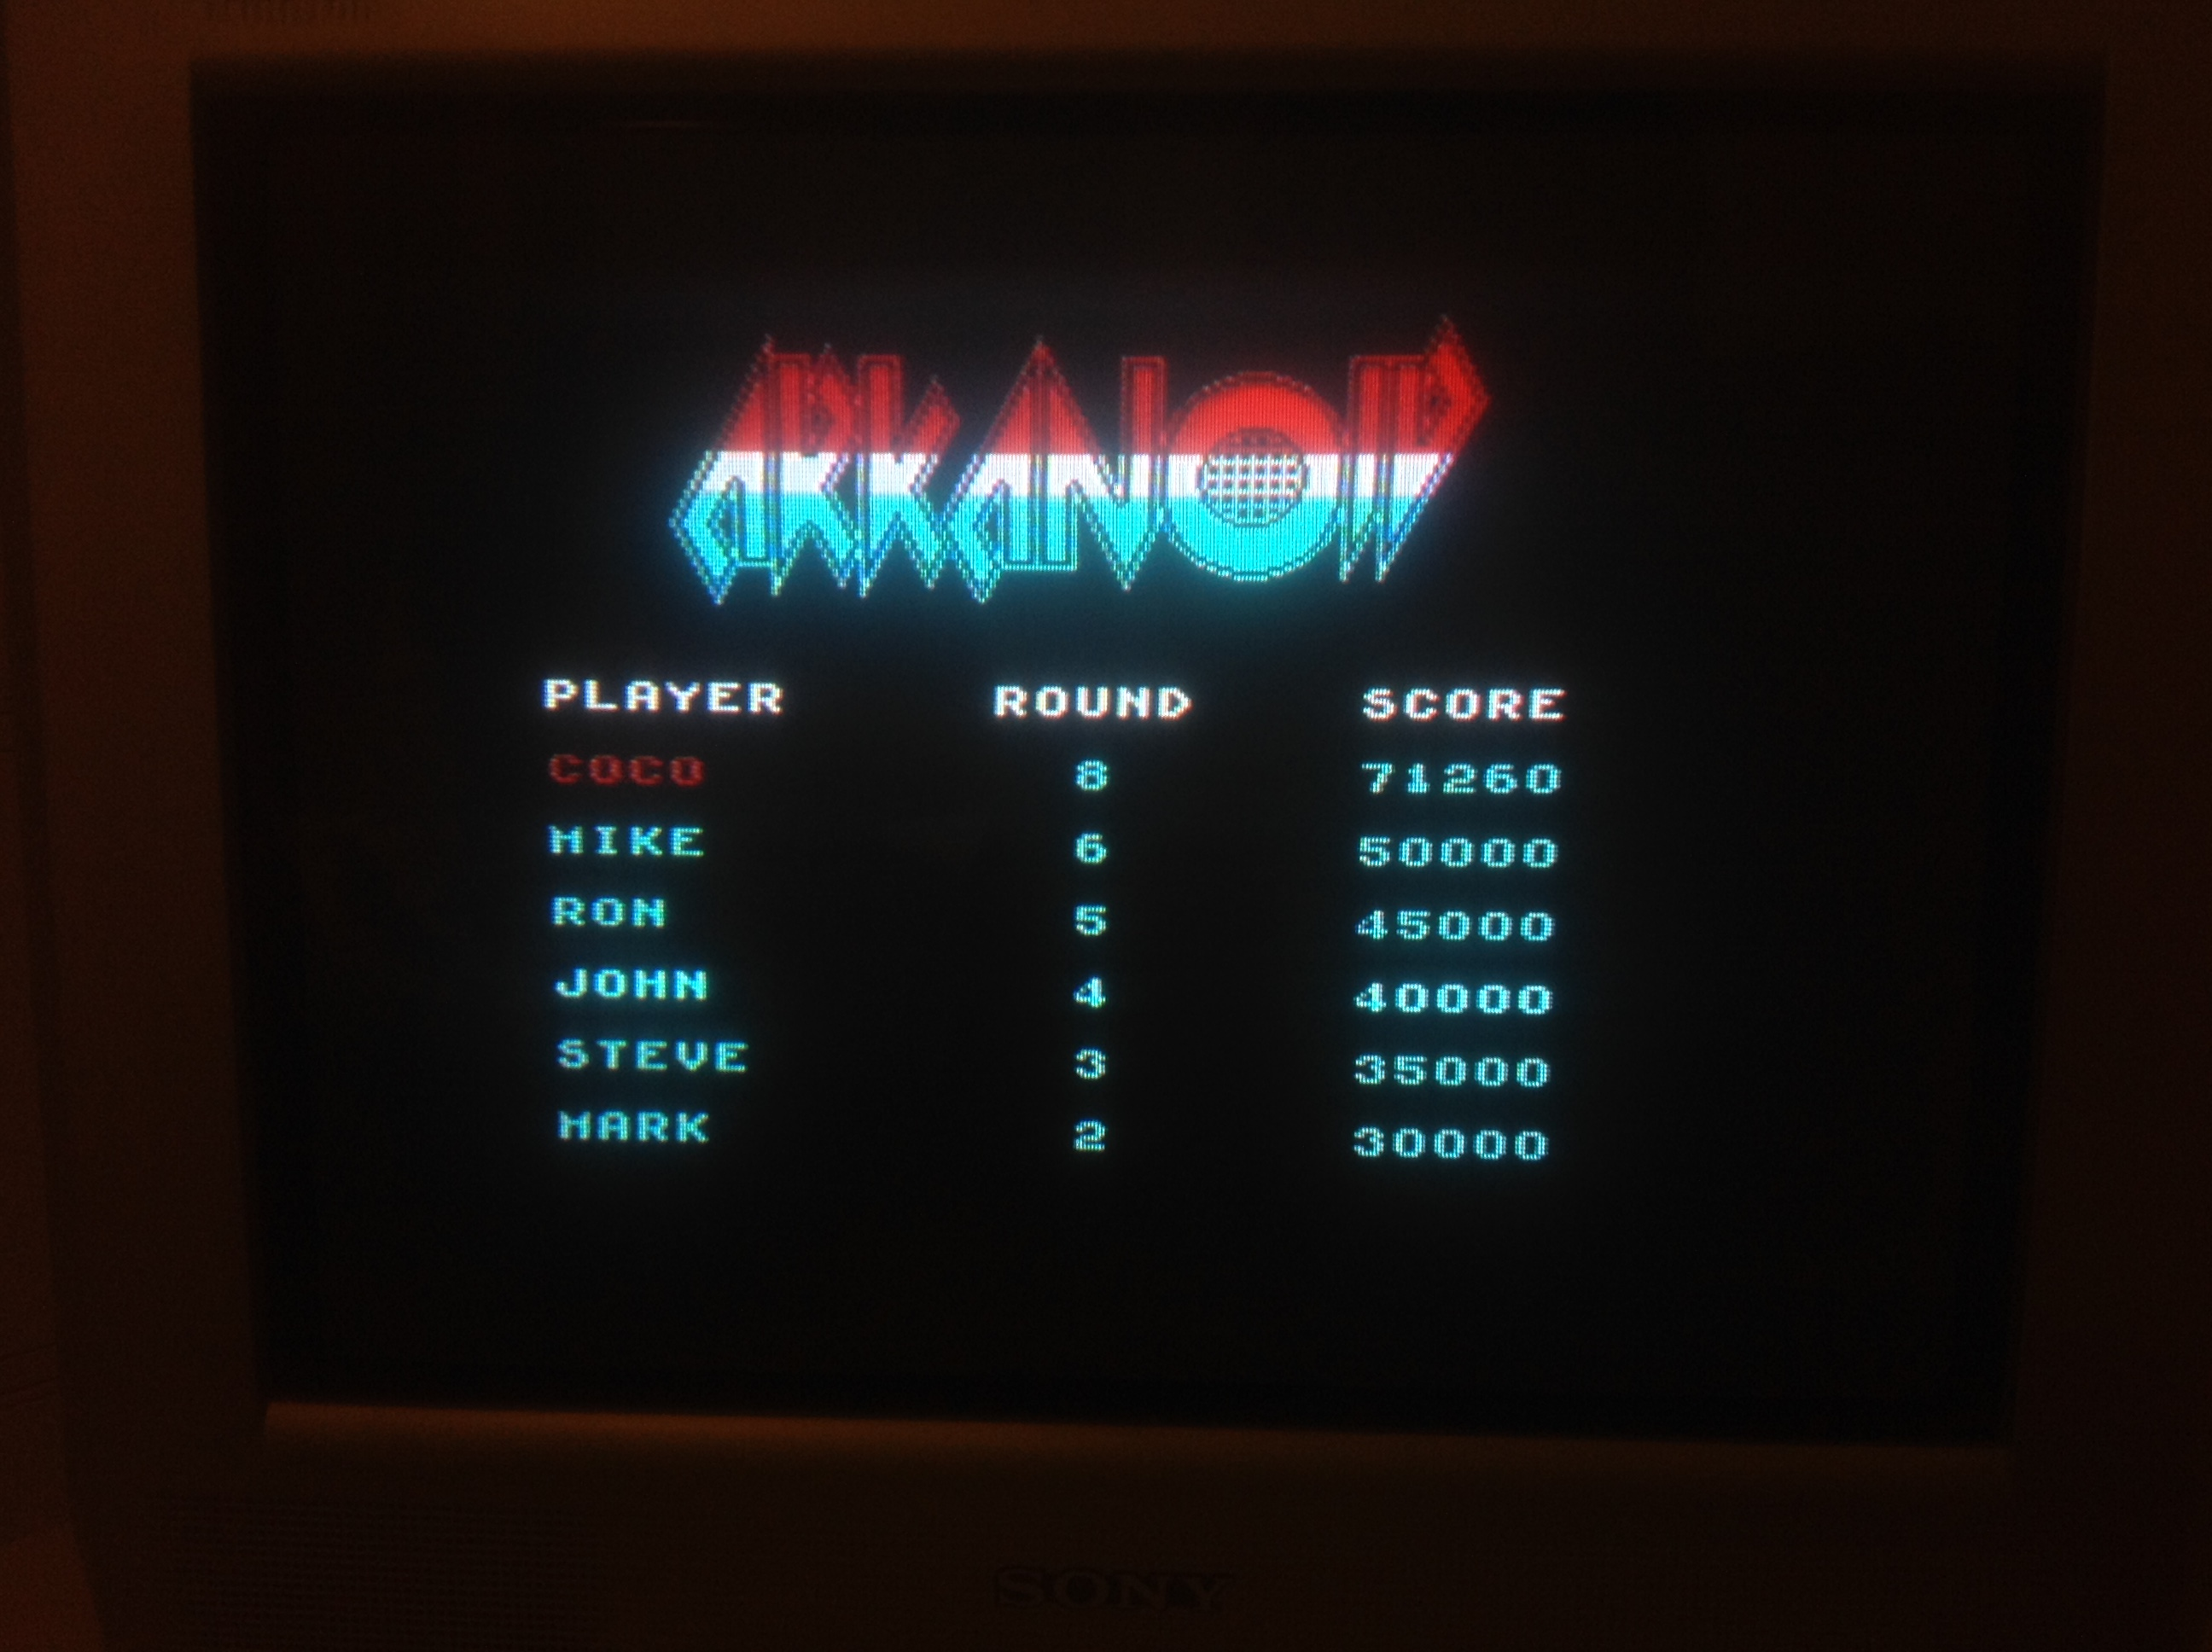 CoCoForest: Arkanoid (ZX Spectrum) 71,260 points on 2016-01-07 12:05:31